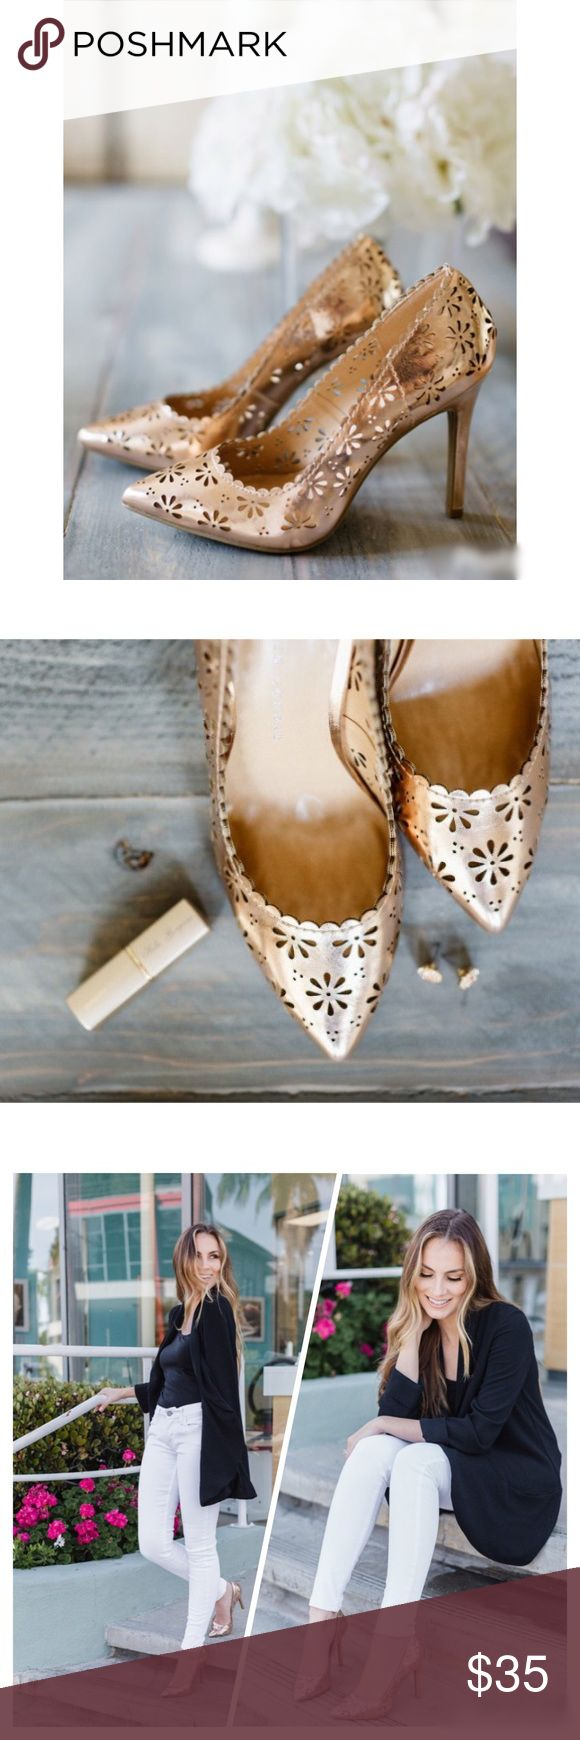 """NWT. LC Lauren Conrad floral cutout gold pumps NWT. LC Lauren Conrad floral cutout gold pumps. Introduce some radiant style to your ensemble with these women's floral pumps from LC Lauren Conrad. Features a cut-out floral design, treaded sole, pointed toe, slip on, padded footbed. About 4"""" heel. True to size   Sorry, no trades. Like the item but not the price, feel free to make me a reasonable offer using the offer button. LC Lauren Conrad Shoes Heels"""